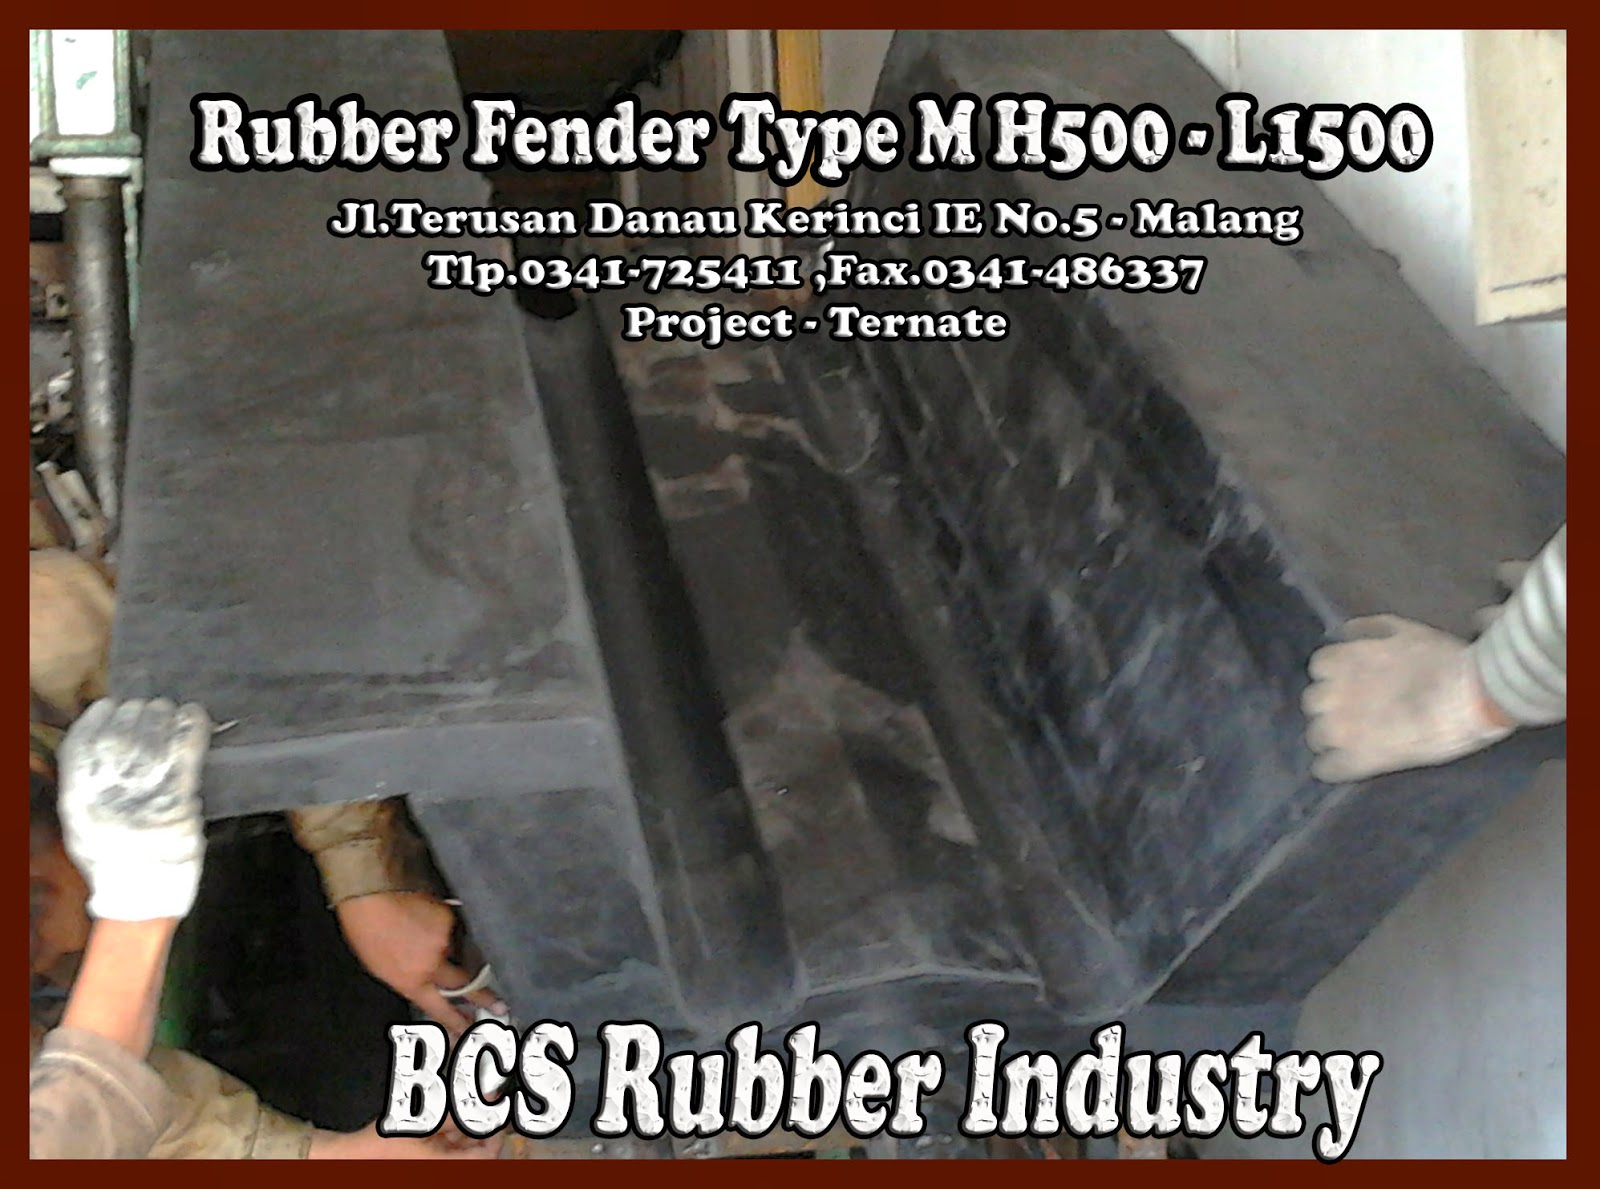 Special Edition Rubber Fender M 500 L 1500